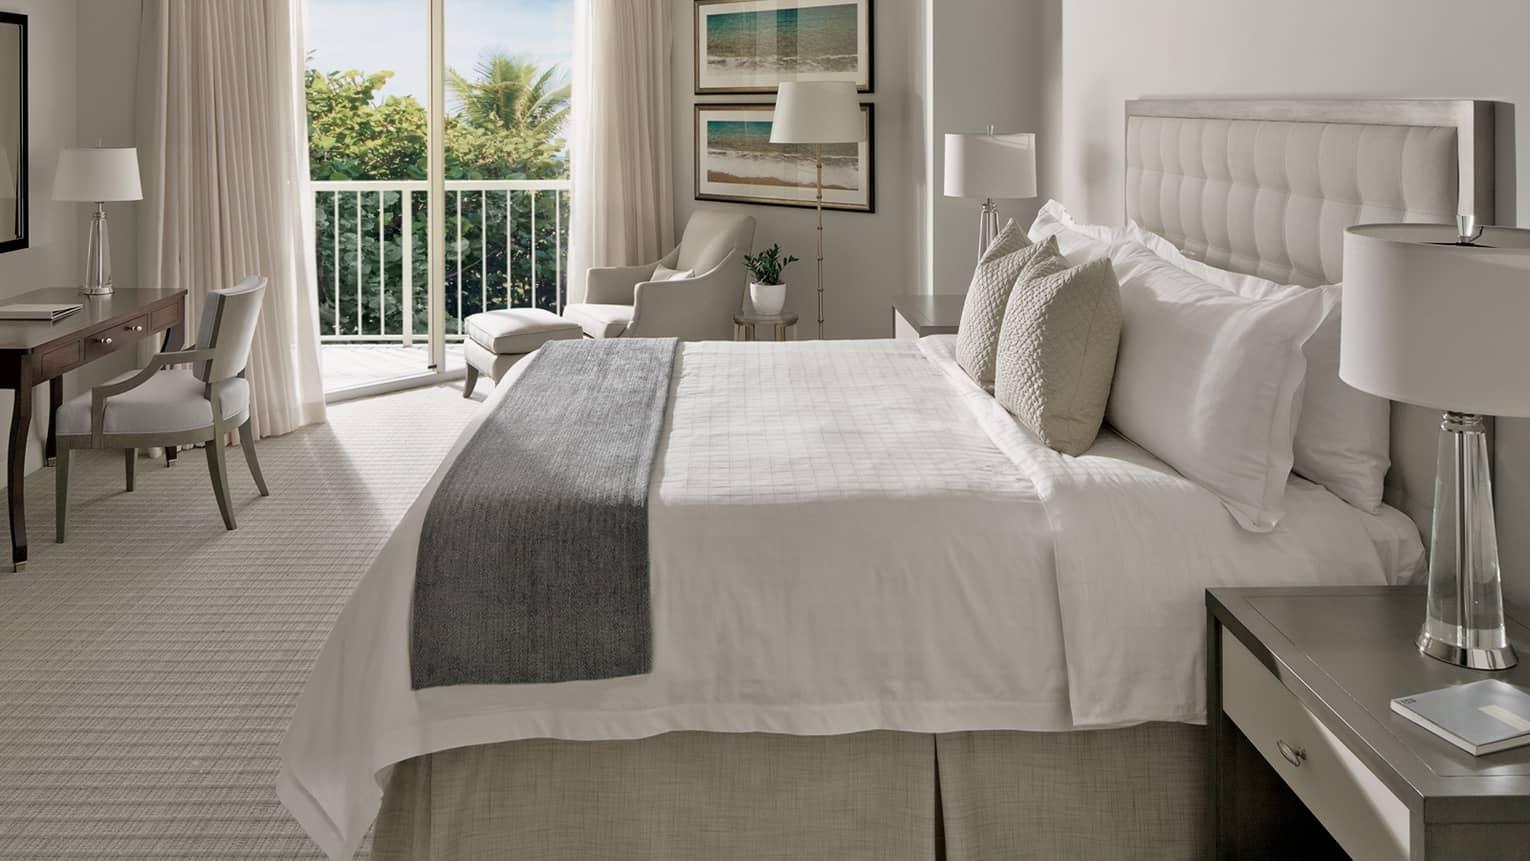 Garden-View Room bed with ivory pillows, grey bedspread, office desk and balcony